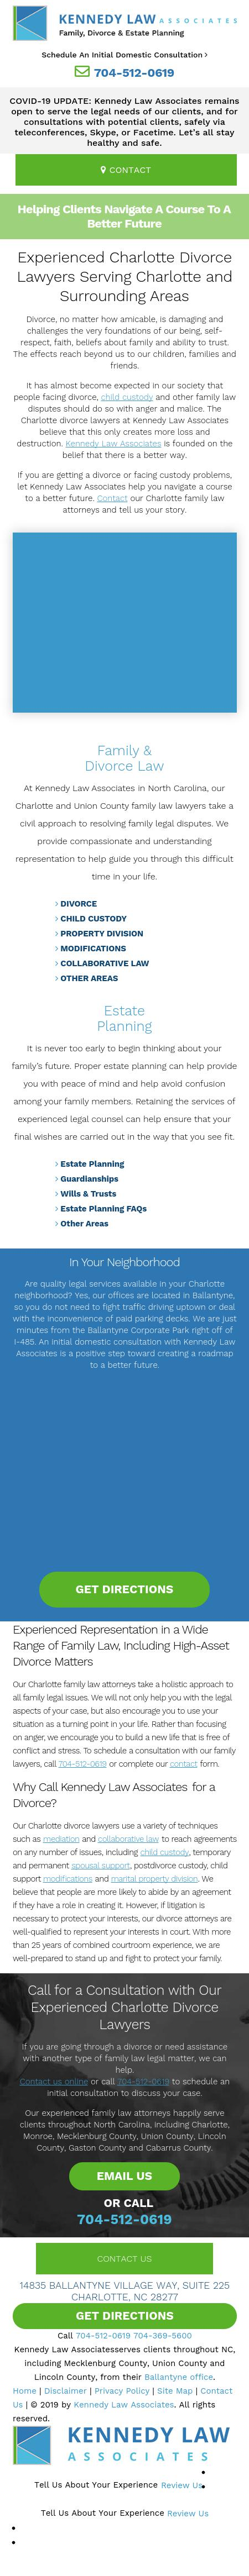 Kennedy Law Associates - Charlotte NC Lawyers